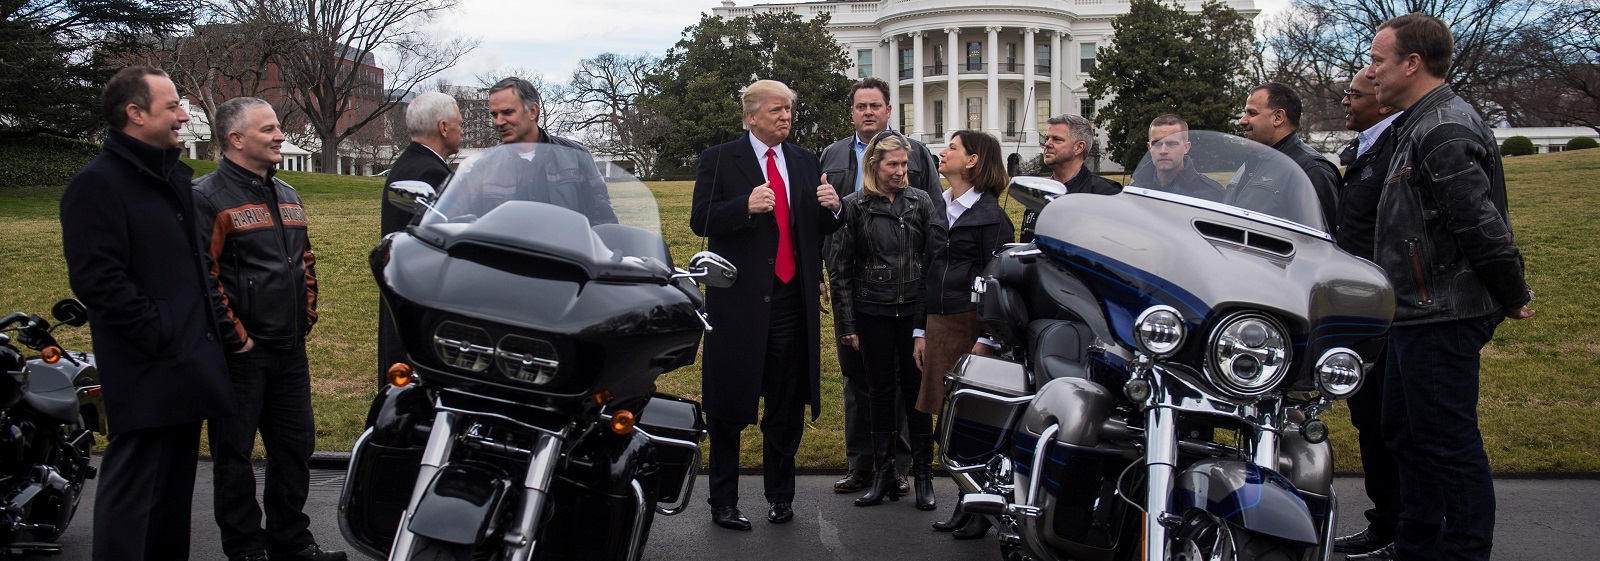 President Trump and Vice President Pence meet with Harley Davidson executives and Union Representatives on 2 Feb 2017 (Photo: Jabin Botsford/Getty Images)